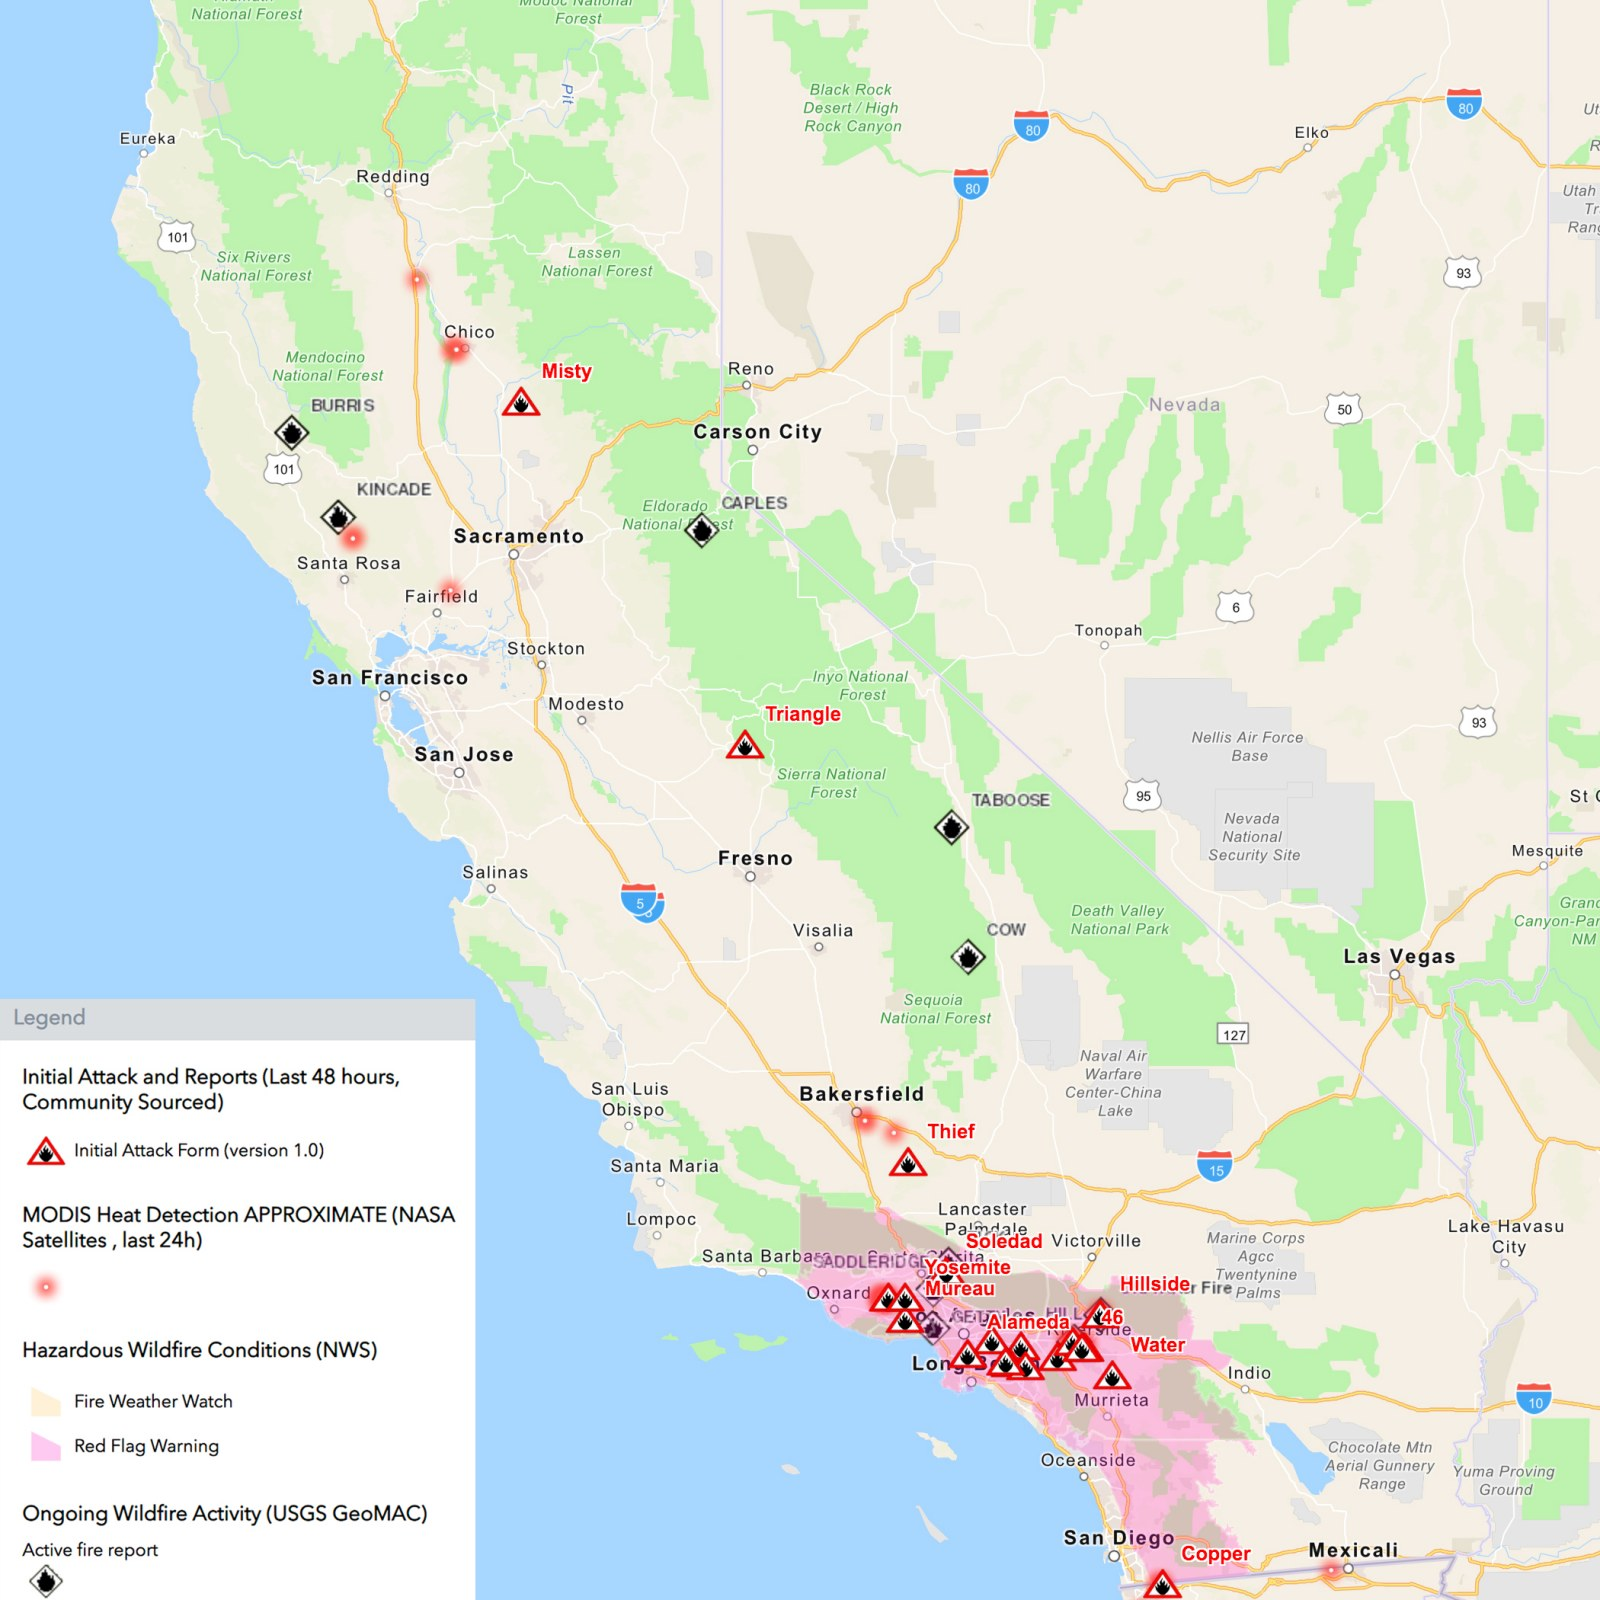 California Fire Map Easy Fire Getty Fire Hill Fire Fullerton Fire Riverside Fire Kincade Fire Update As State Battles 10 Active Blazes